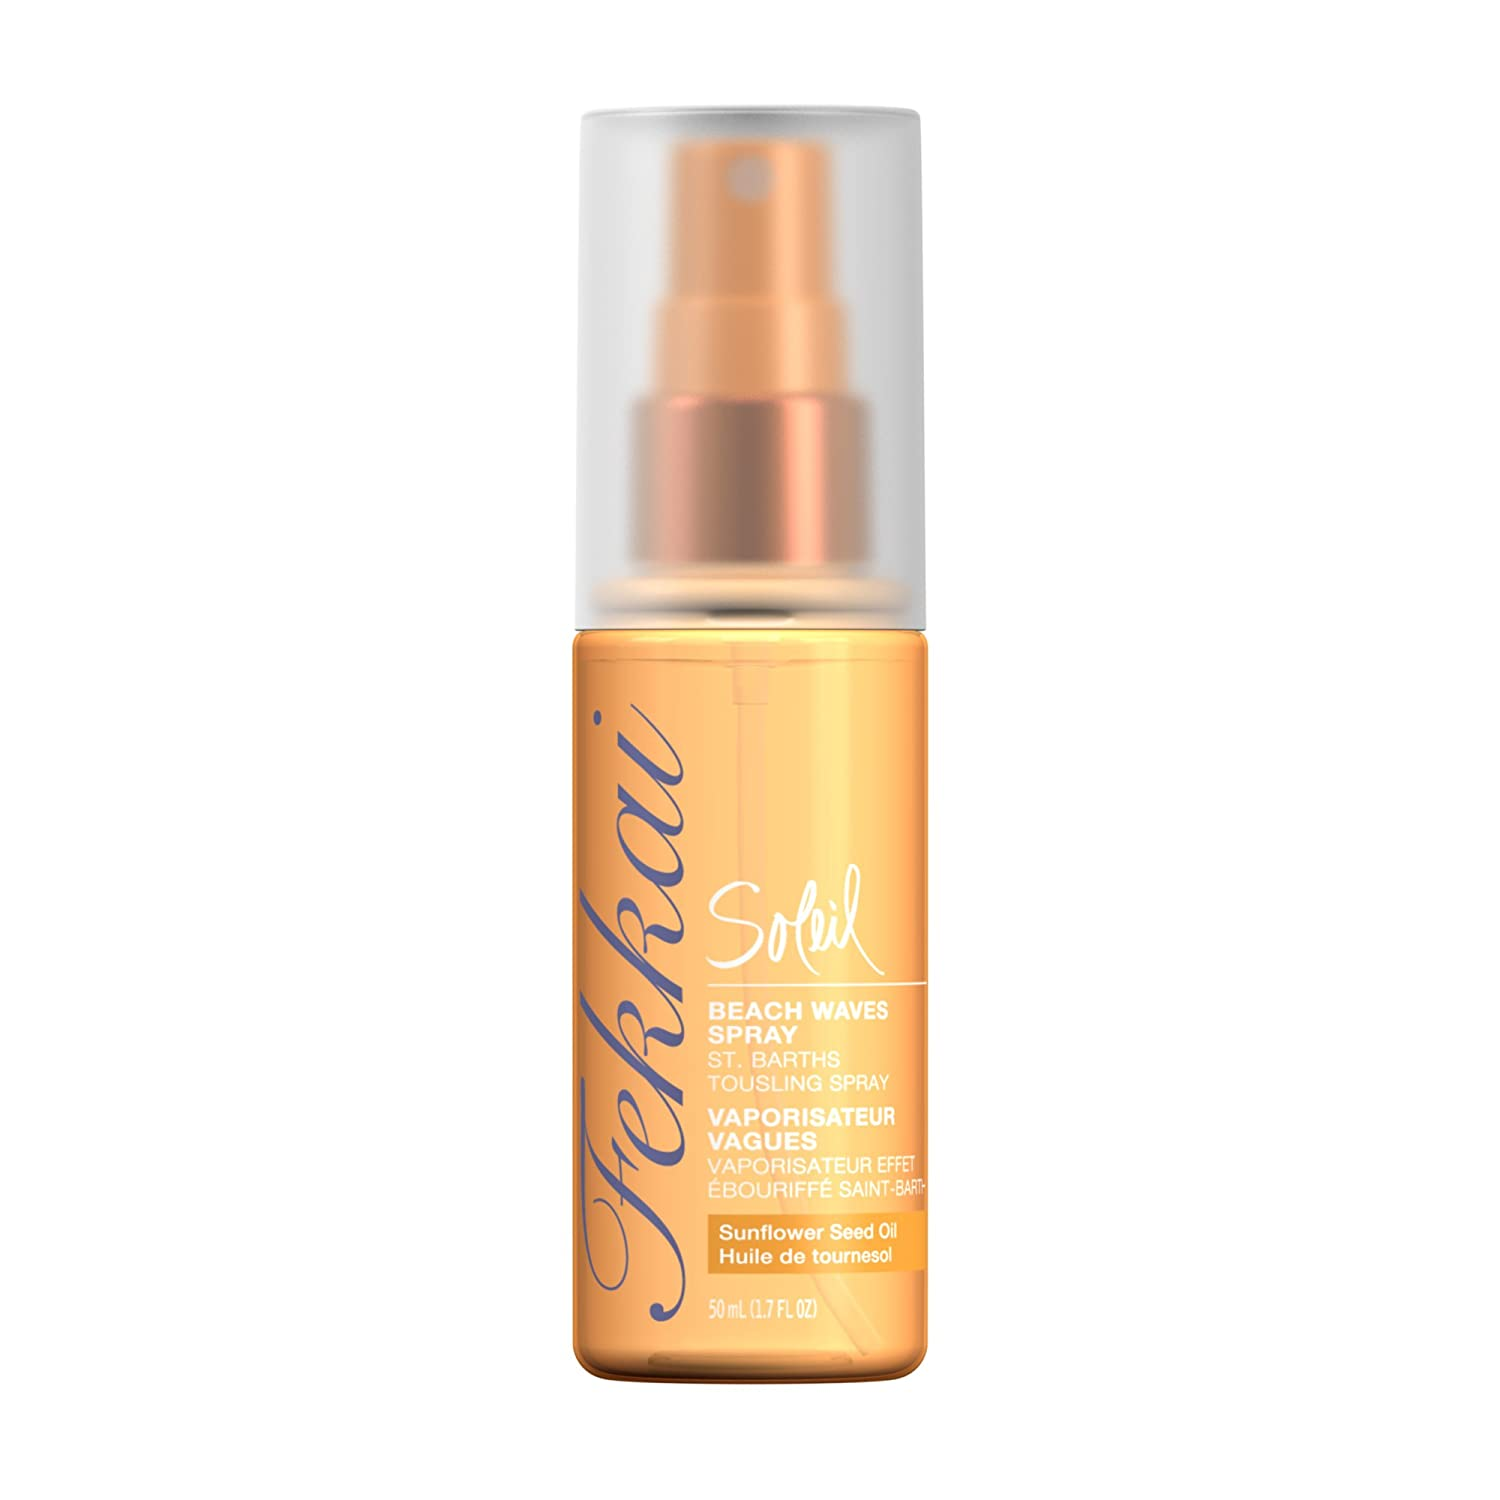 Fekkai Soleil Beach Waves Spray - 1.7 Oz. Frederic Fekkai 730870201336